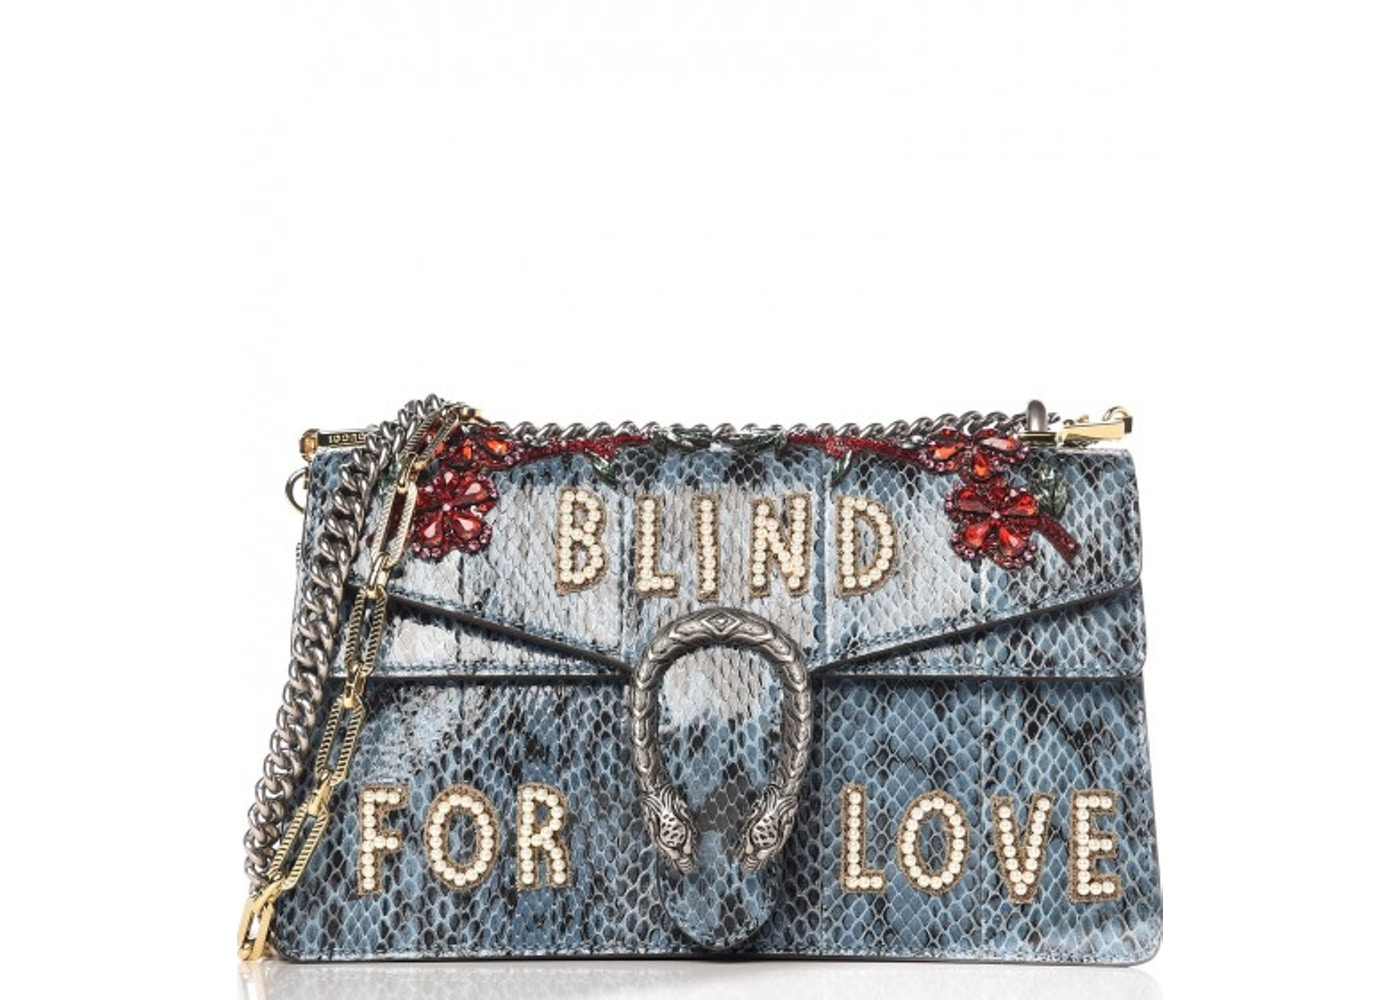 eabd581283e2c2 Gucci Dionysus Flap Blind For Love Embroidered Small Marine Blue